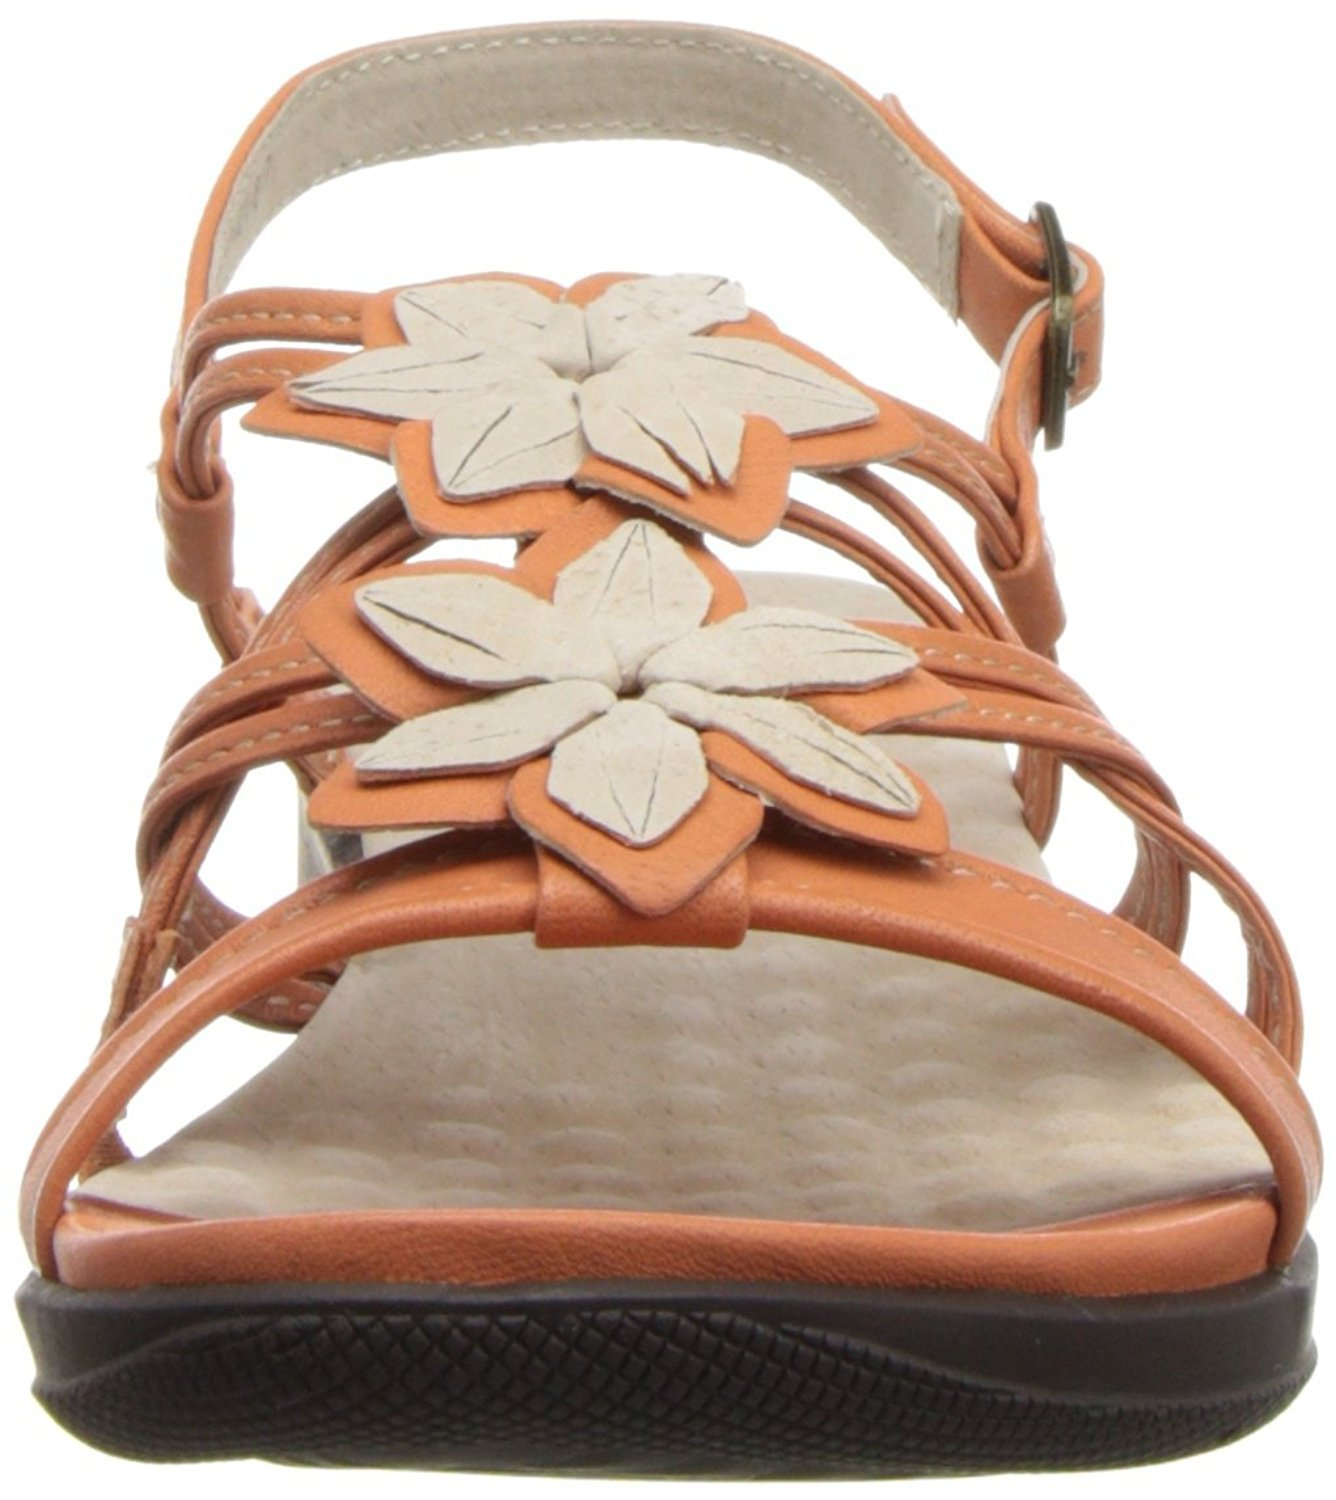 Softwalk Women's Tabago Wedge Sandal (9.5 2A(N), Orange Washed Nappa Leather/Nude Sueded Leather)